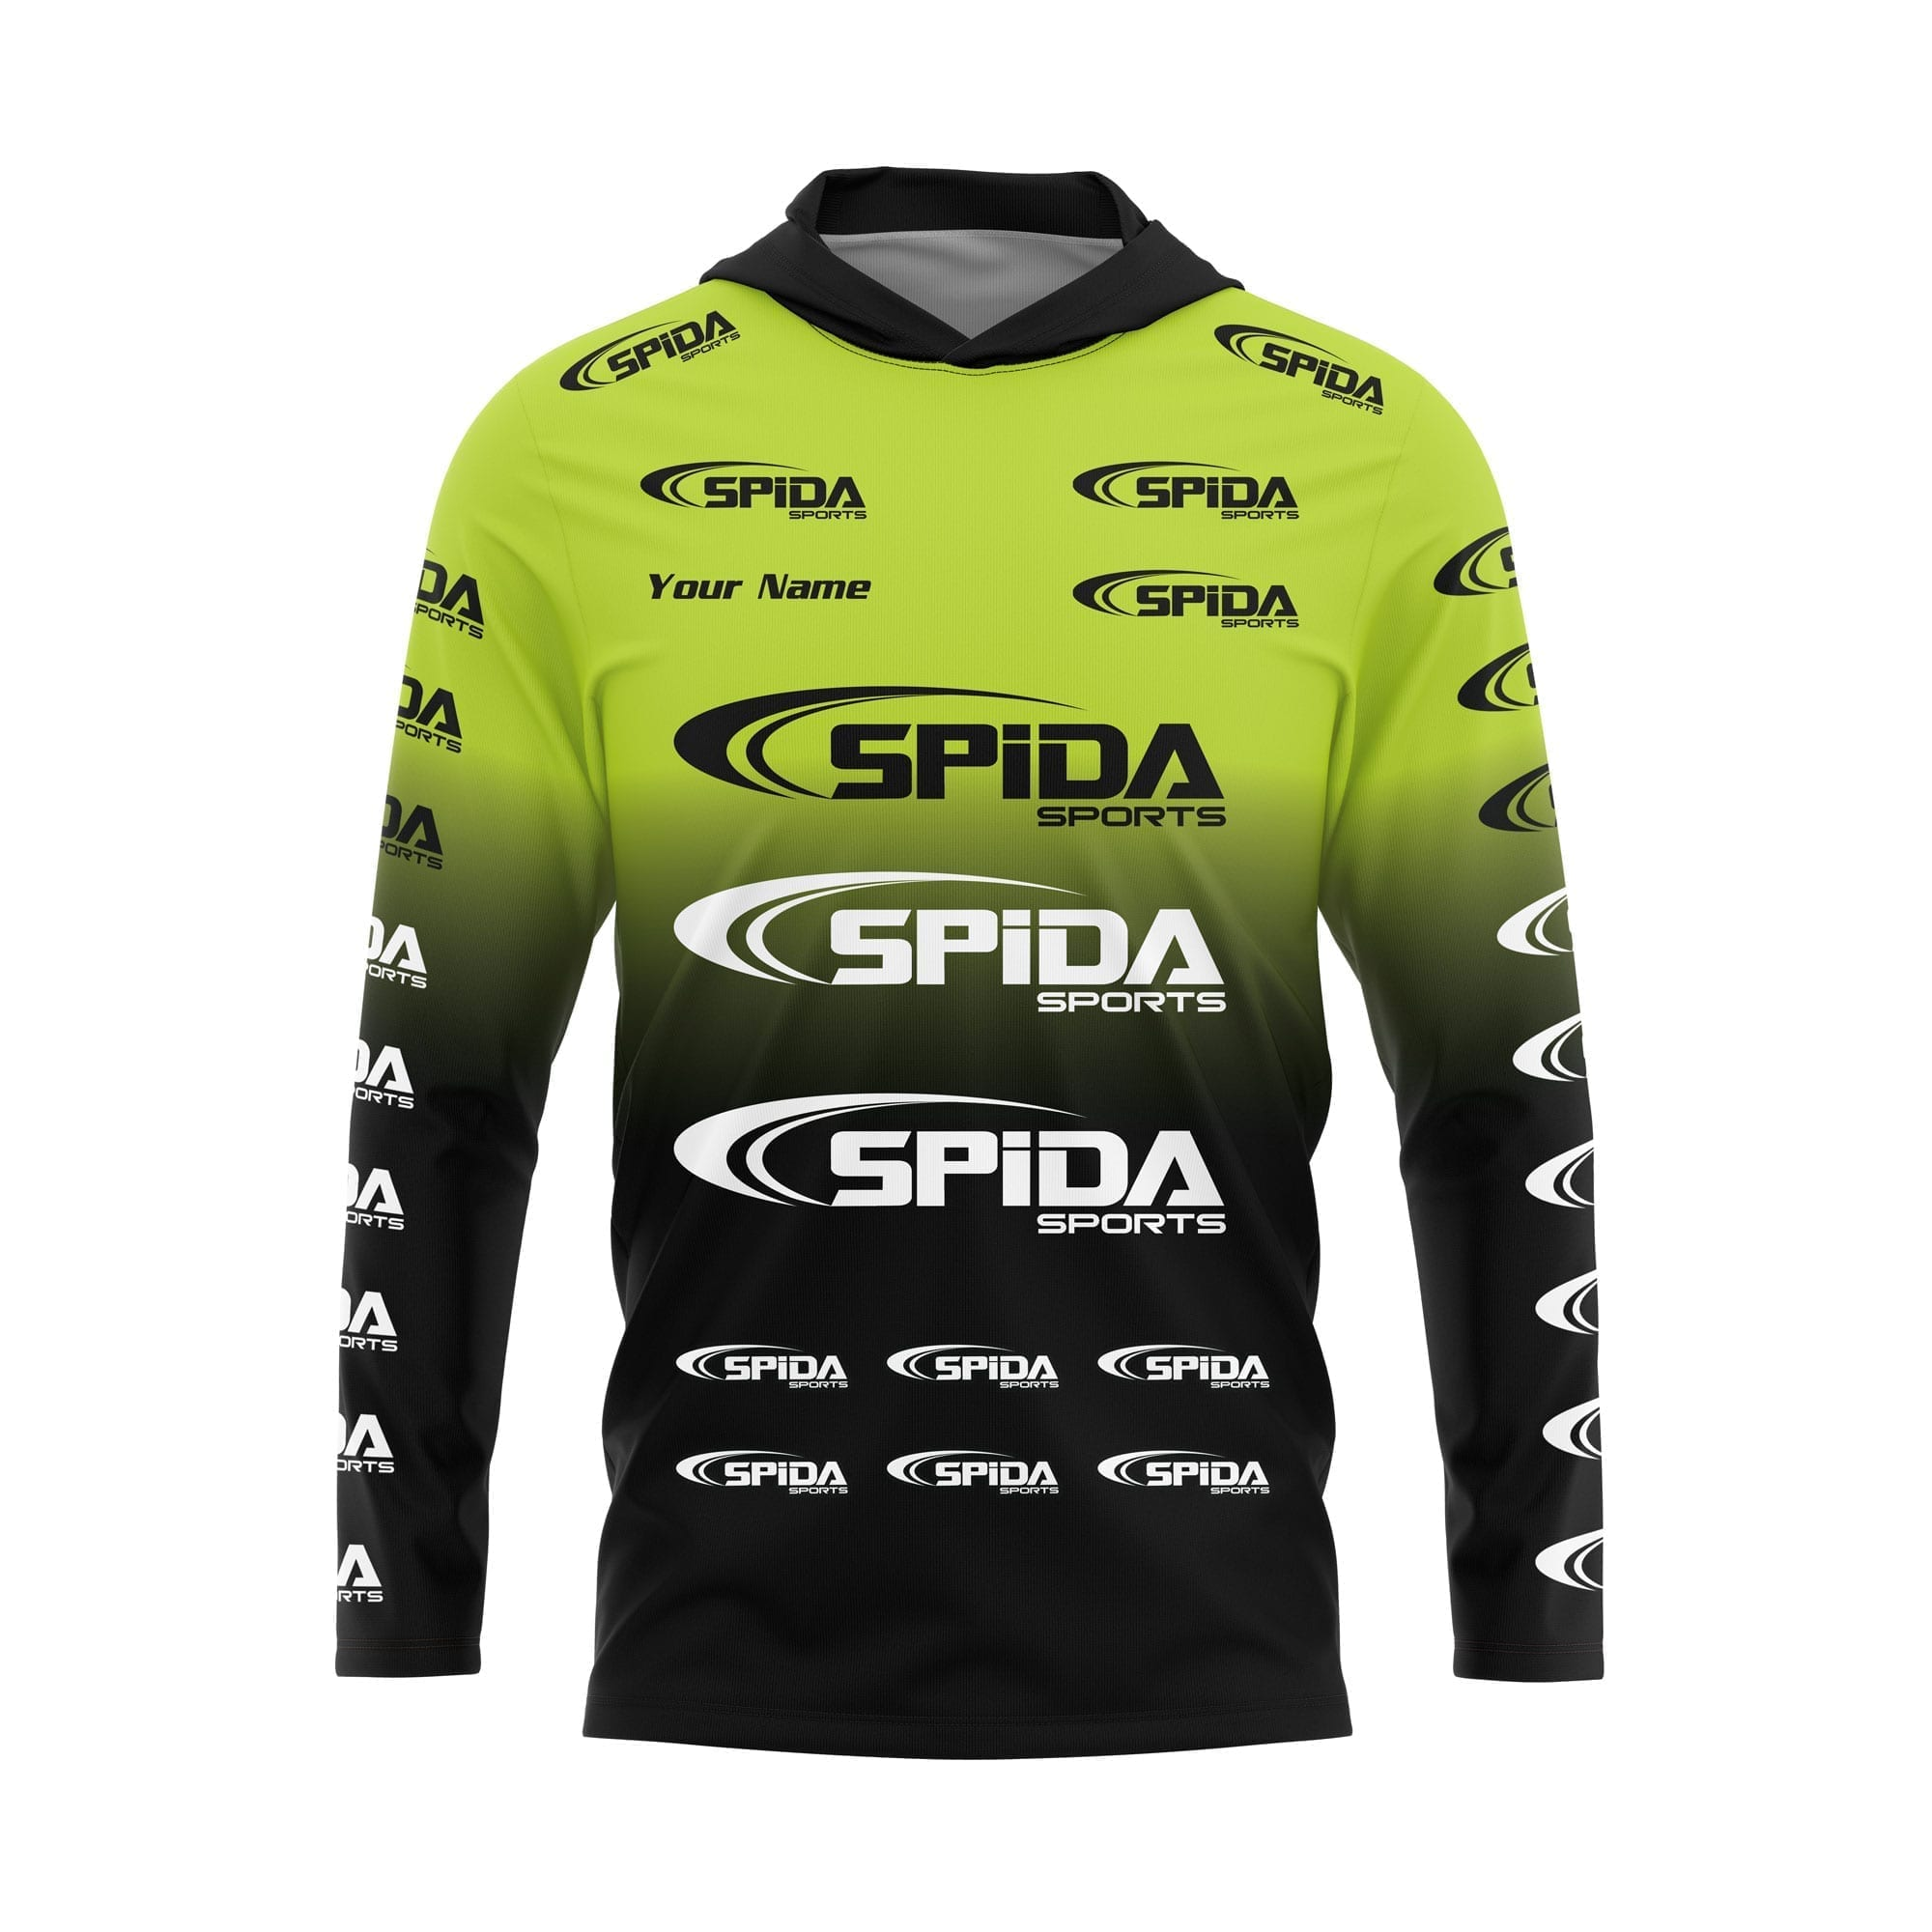 Viper-Hooded-Fishing-Jerseys-FRONT-with-logos